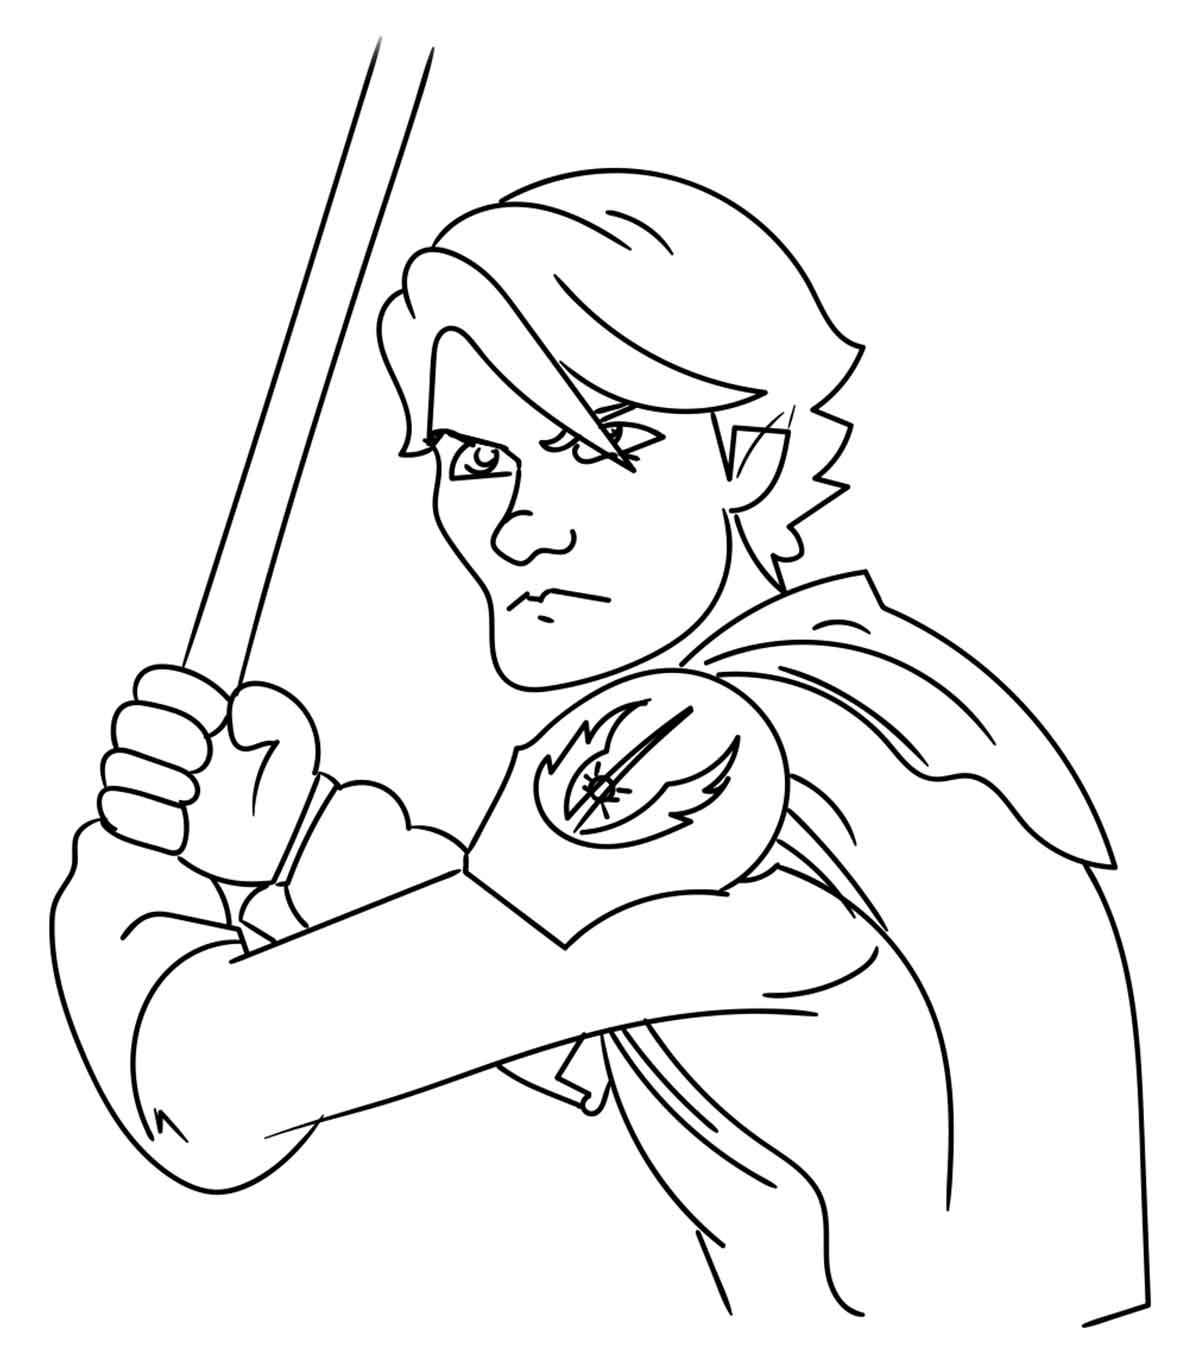 Coloring Page Tv Series Coloring Page Team Galaxy | PicGifs.com | 1350x1200